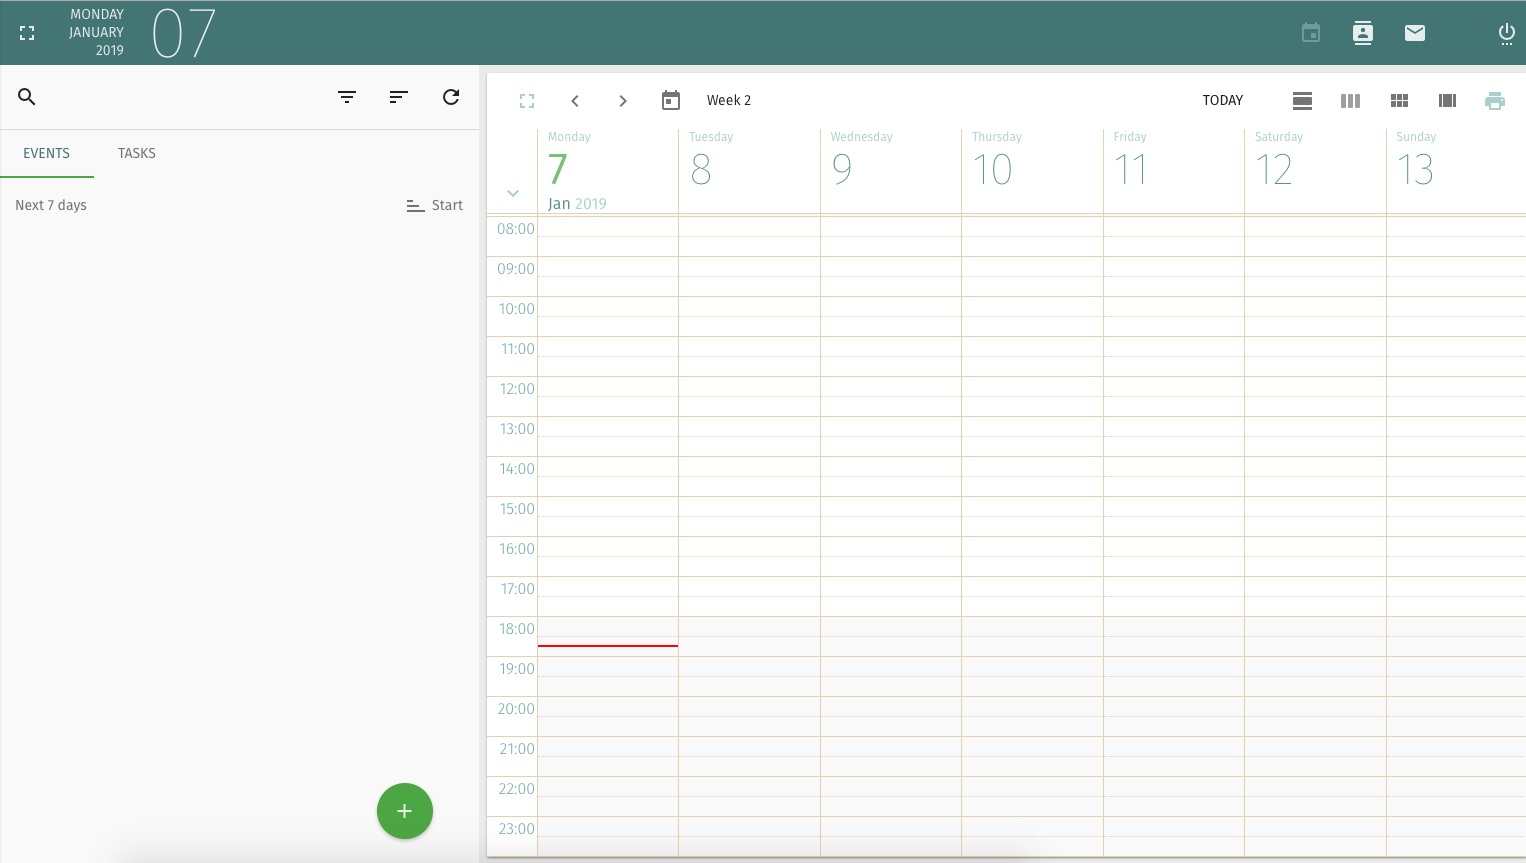 mailcow calendar screenshot